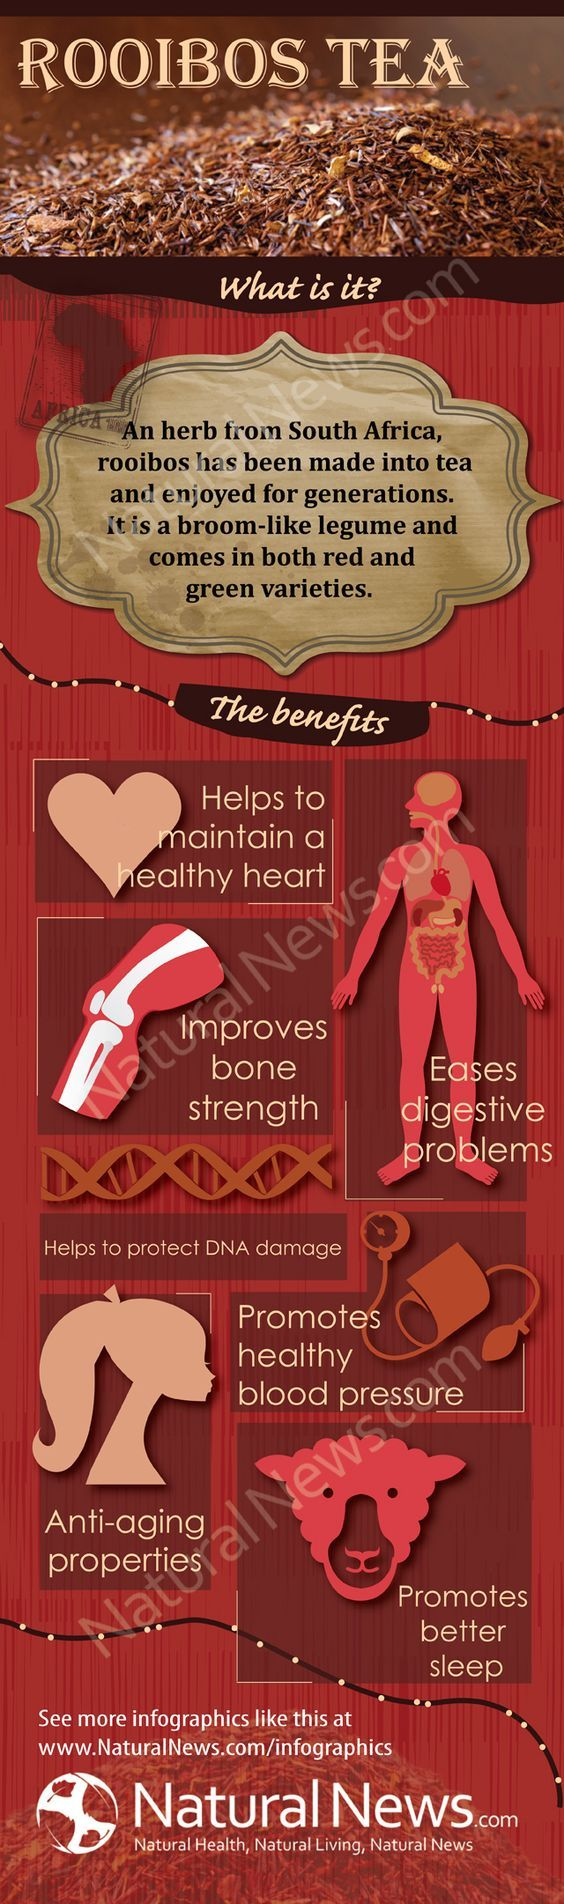 Benefits of Rooibos Tea by The Health Ranger// It is a bushy reed-like plant, actually. The tea is only red if the leaves were dried and fermented, otherwise it is green.